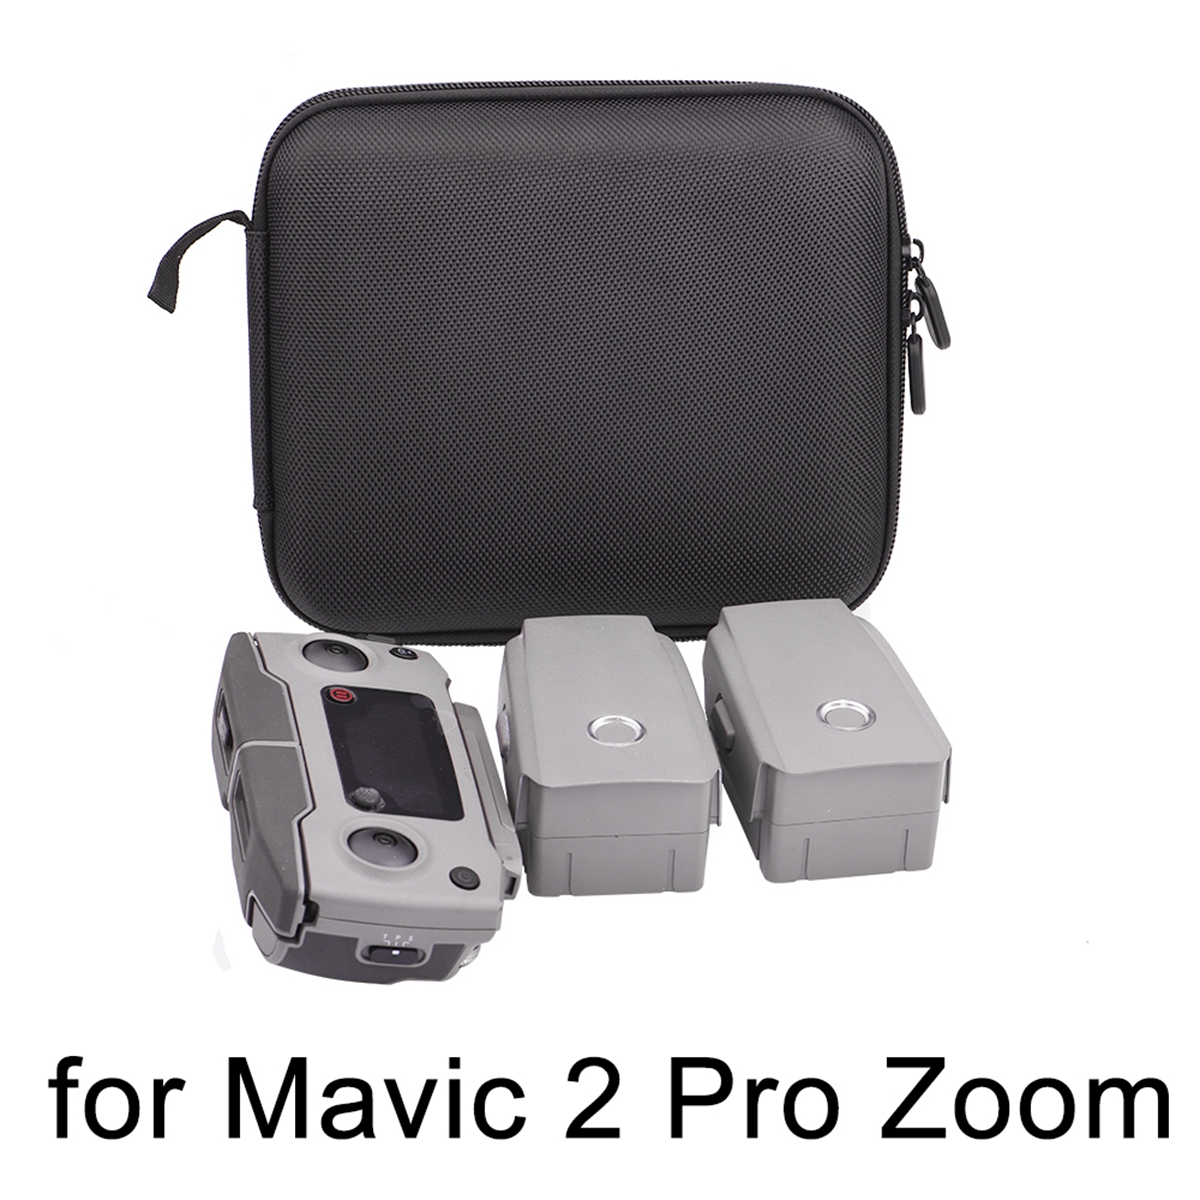 Portable Remote Controller Protection Box Cover Bag For DJI MAVIC 2 PRO  ZOOM Drone Body Battery Carrying Case Travel Protector